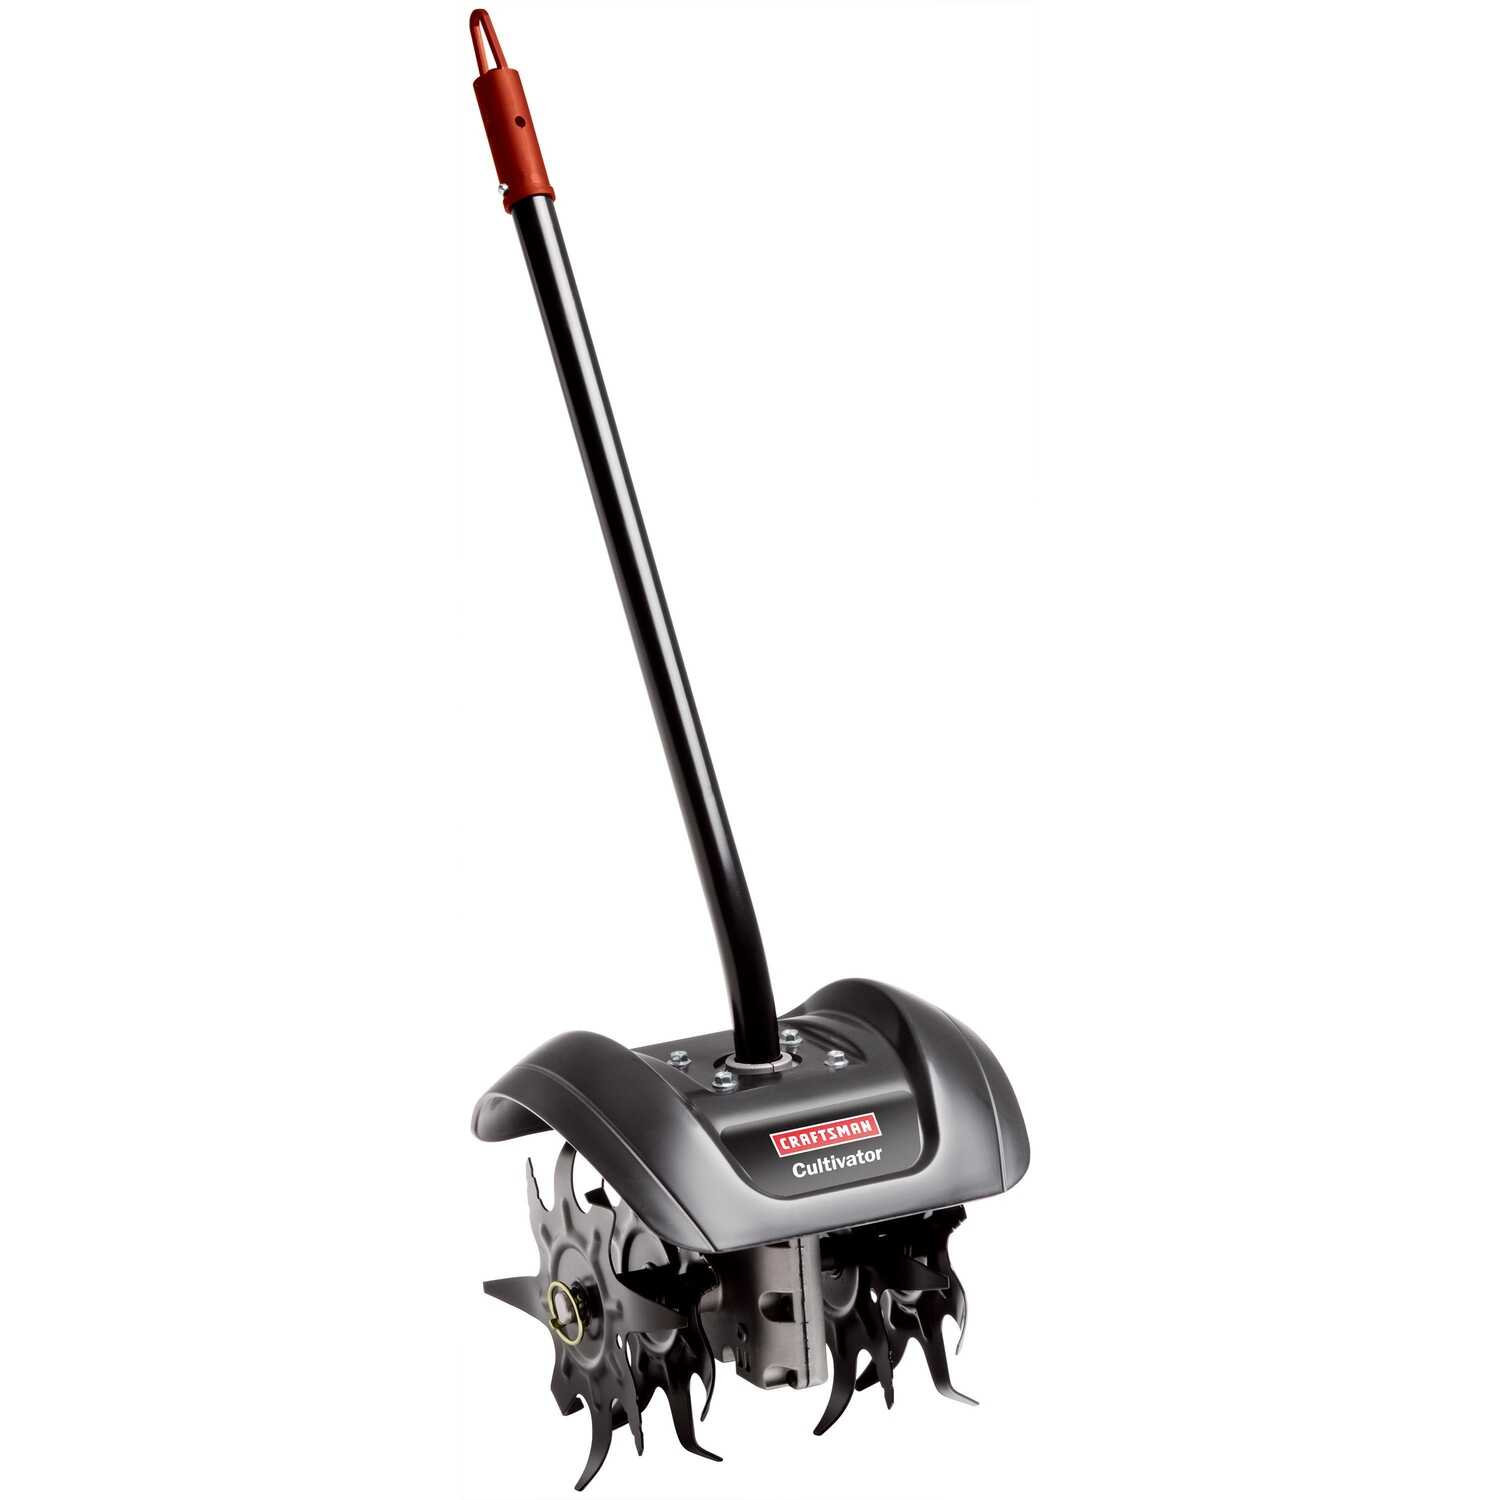 Craftsman  Cultivator Attachment